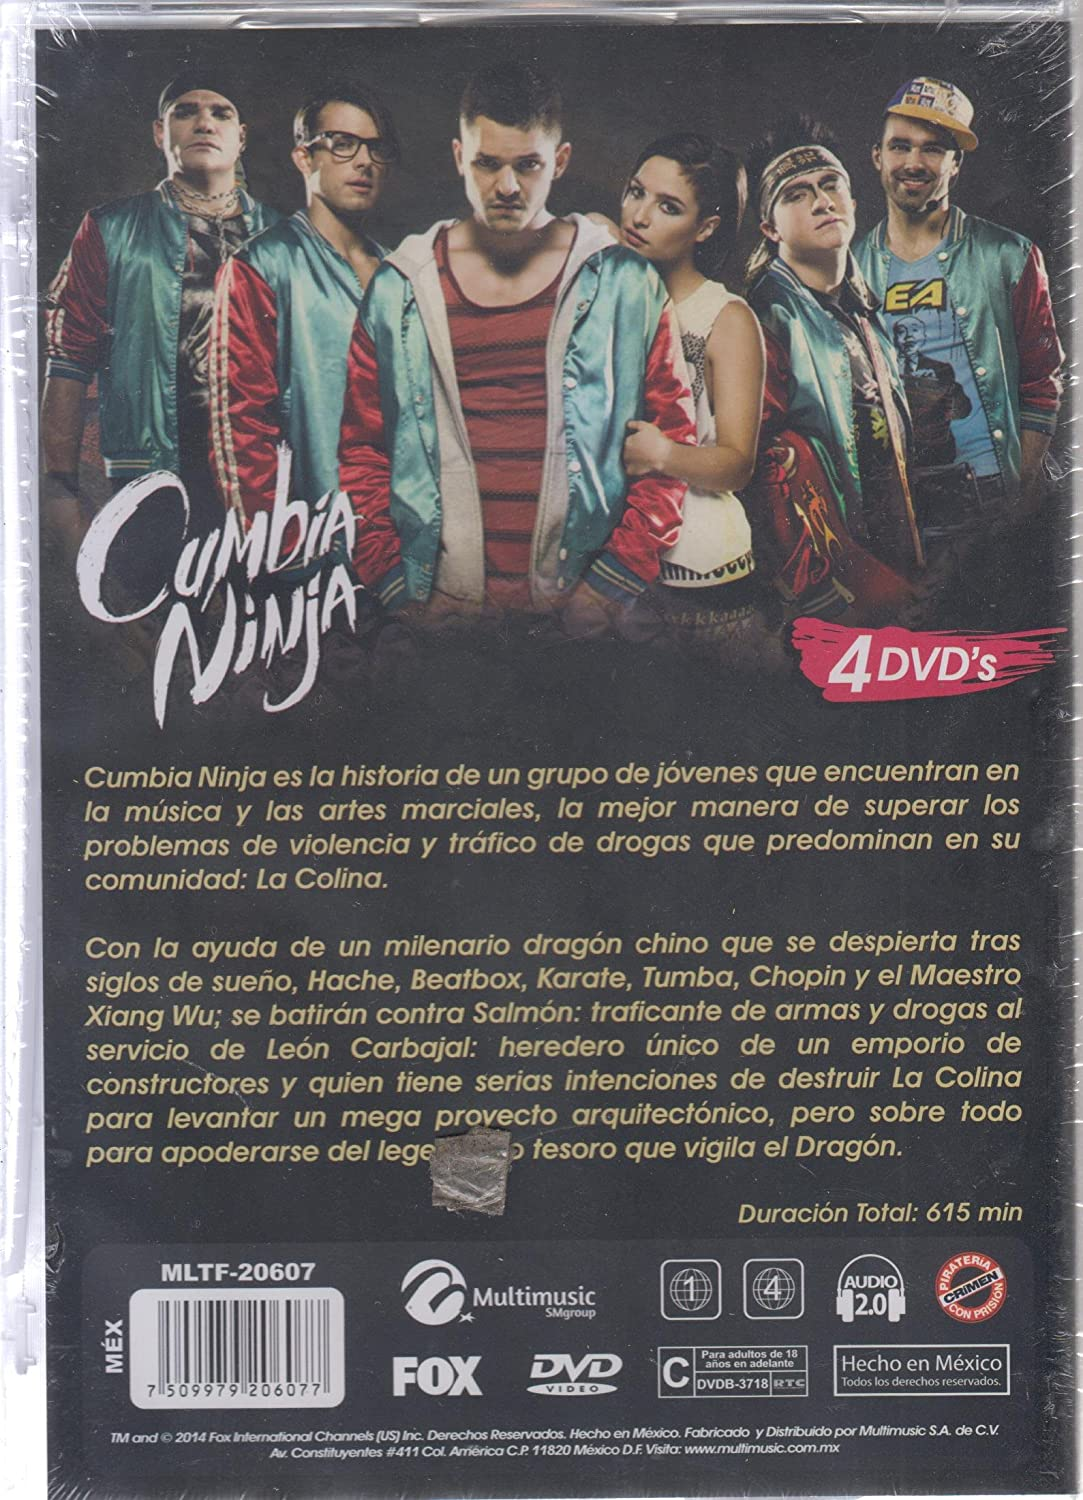 Amazon.com: Cumbia Ninja Primera Temporada: Movies & TV